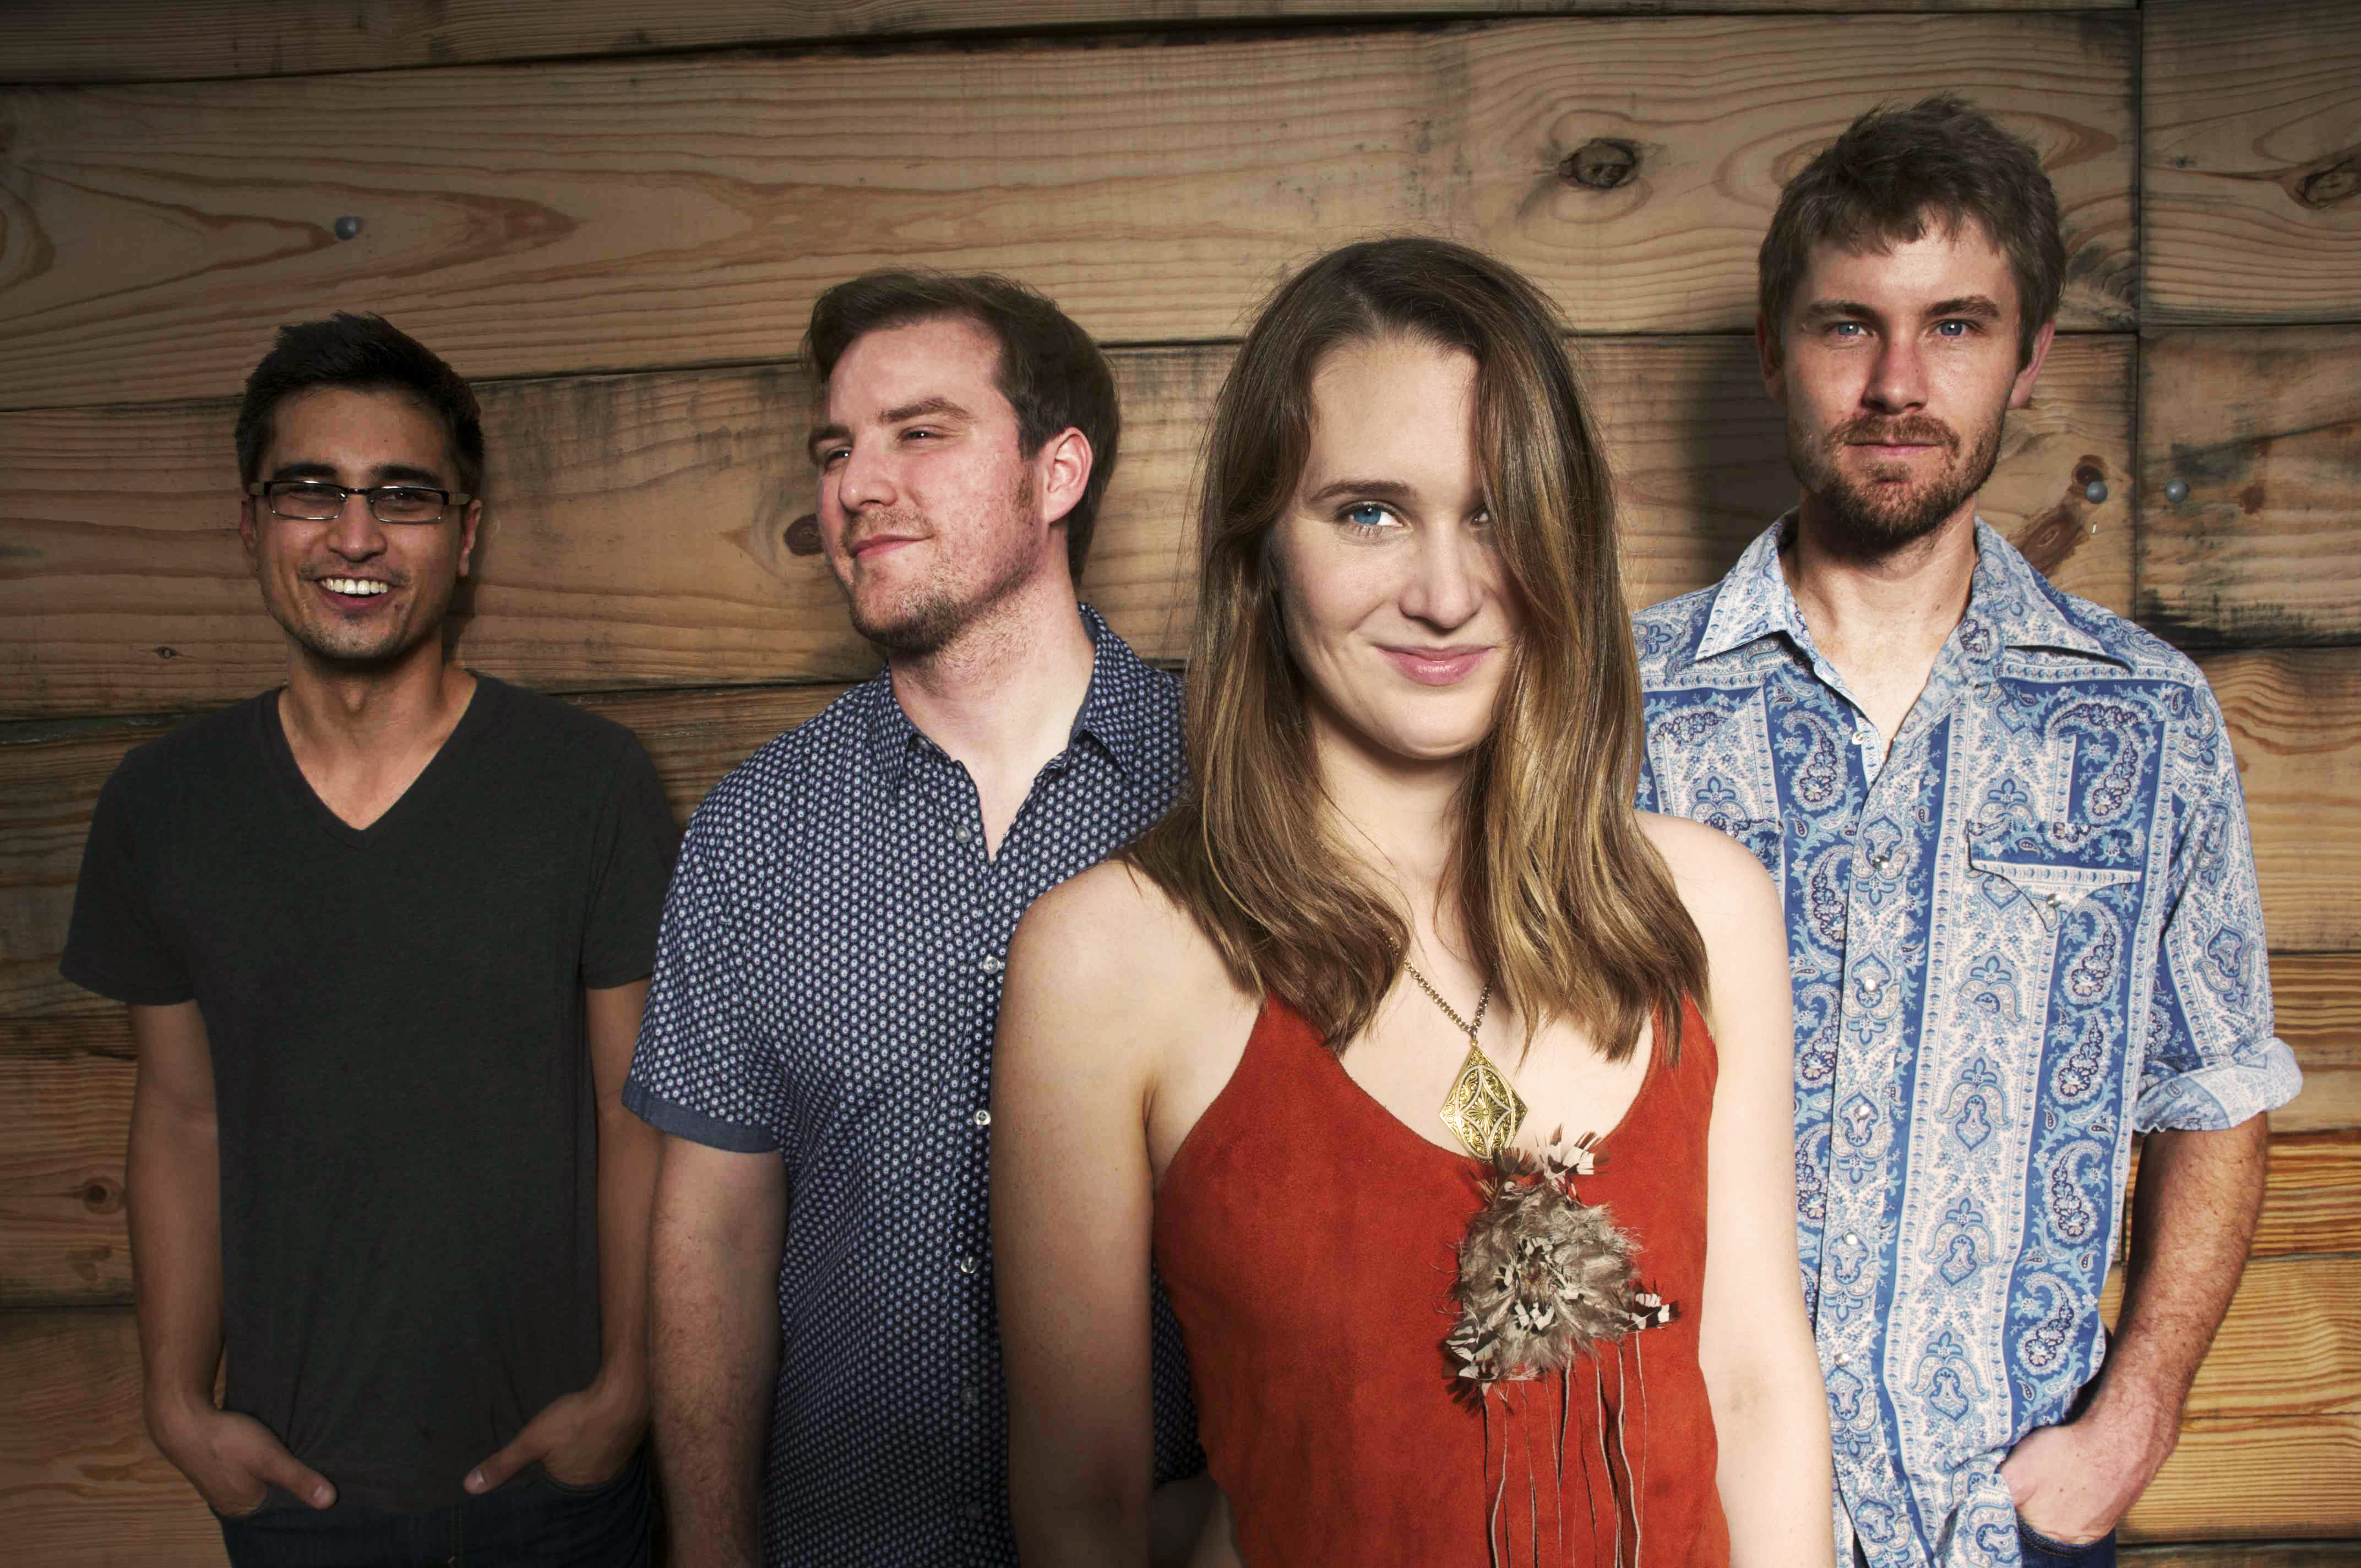 Laney Jones and the Spirits will play East Aurora's 189 Public House on June 22.